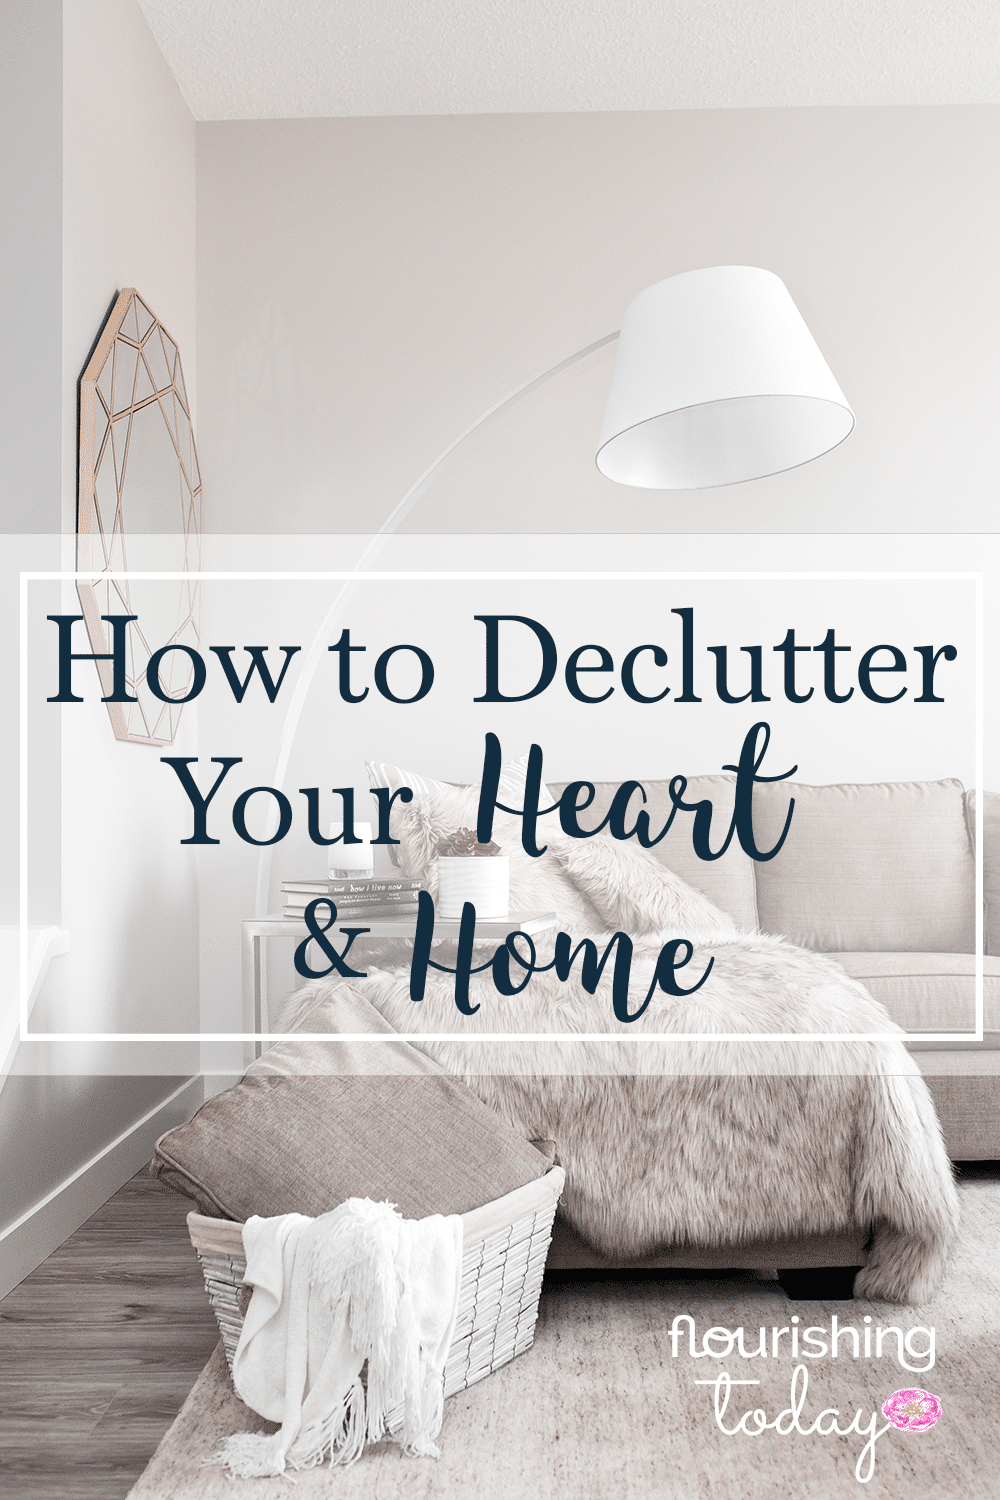 Are you surrounded by clutter in your life? Is your peace crowded out by stuff? Here are a few tips on How to Declutter Your Life.